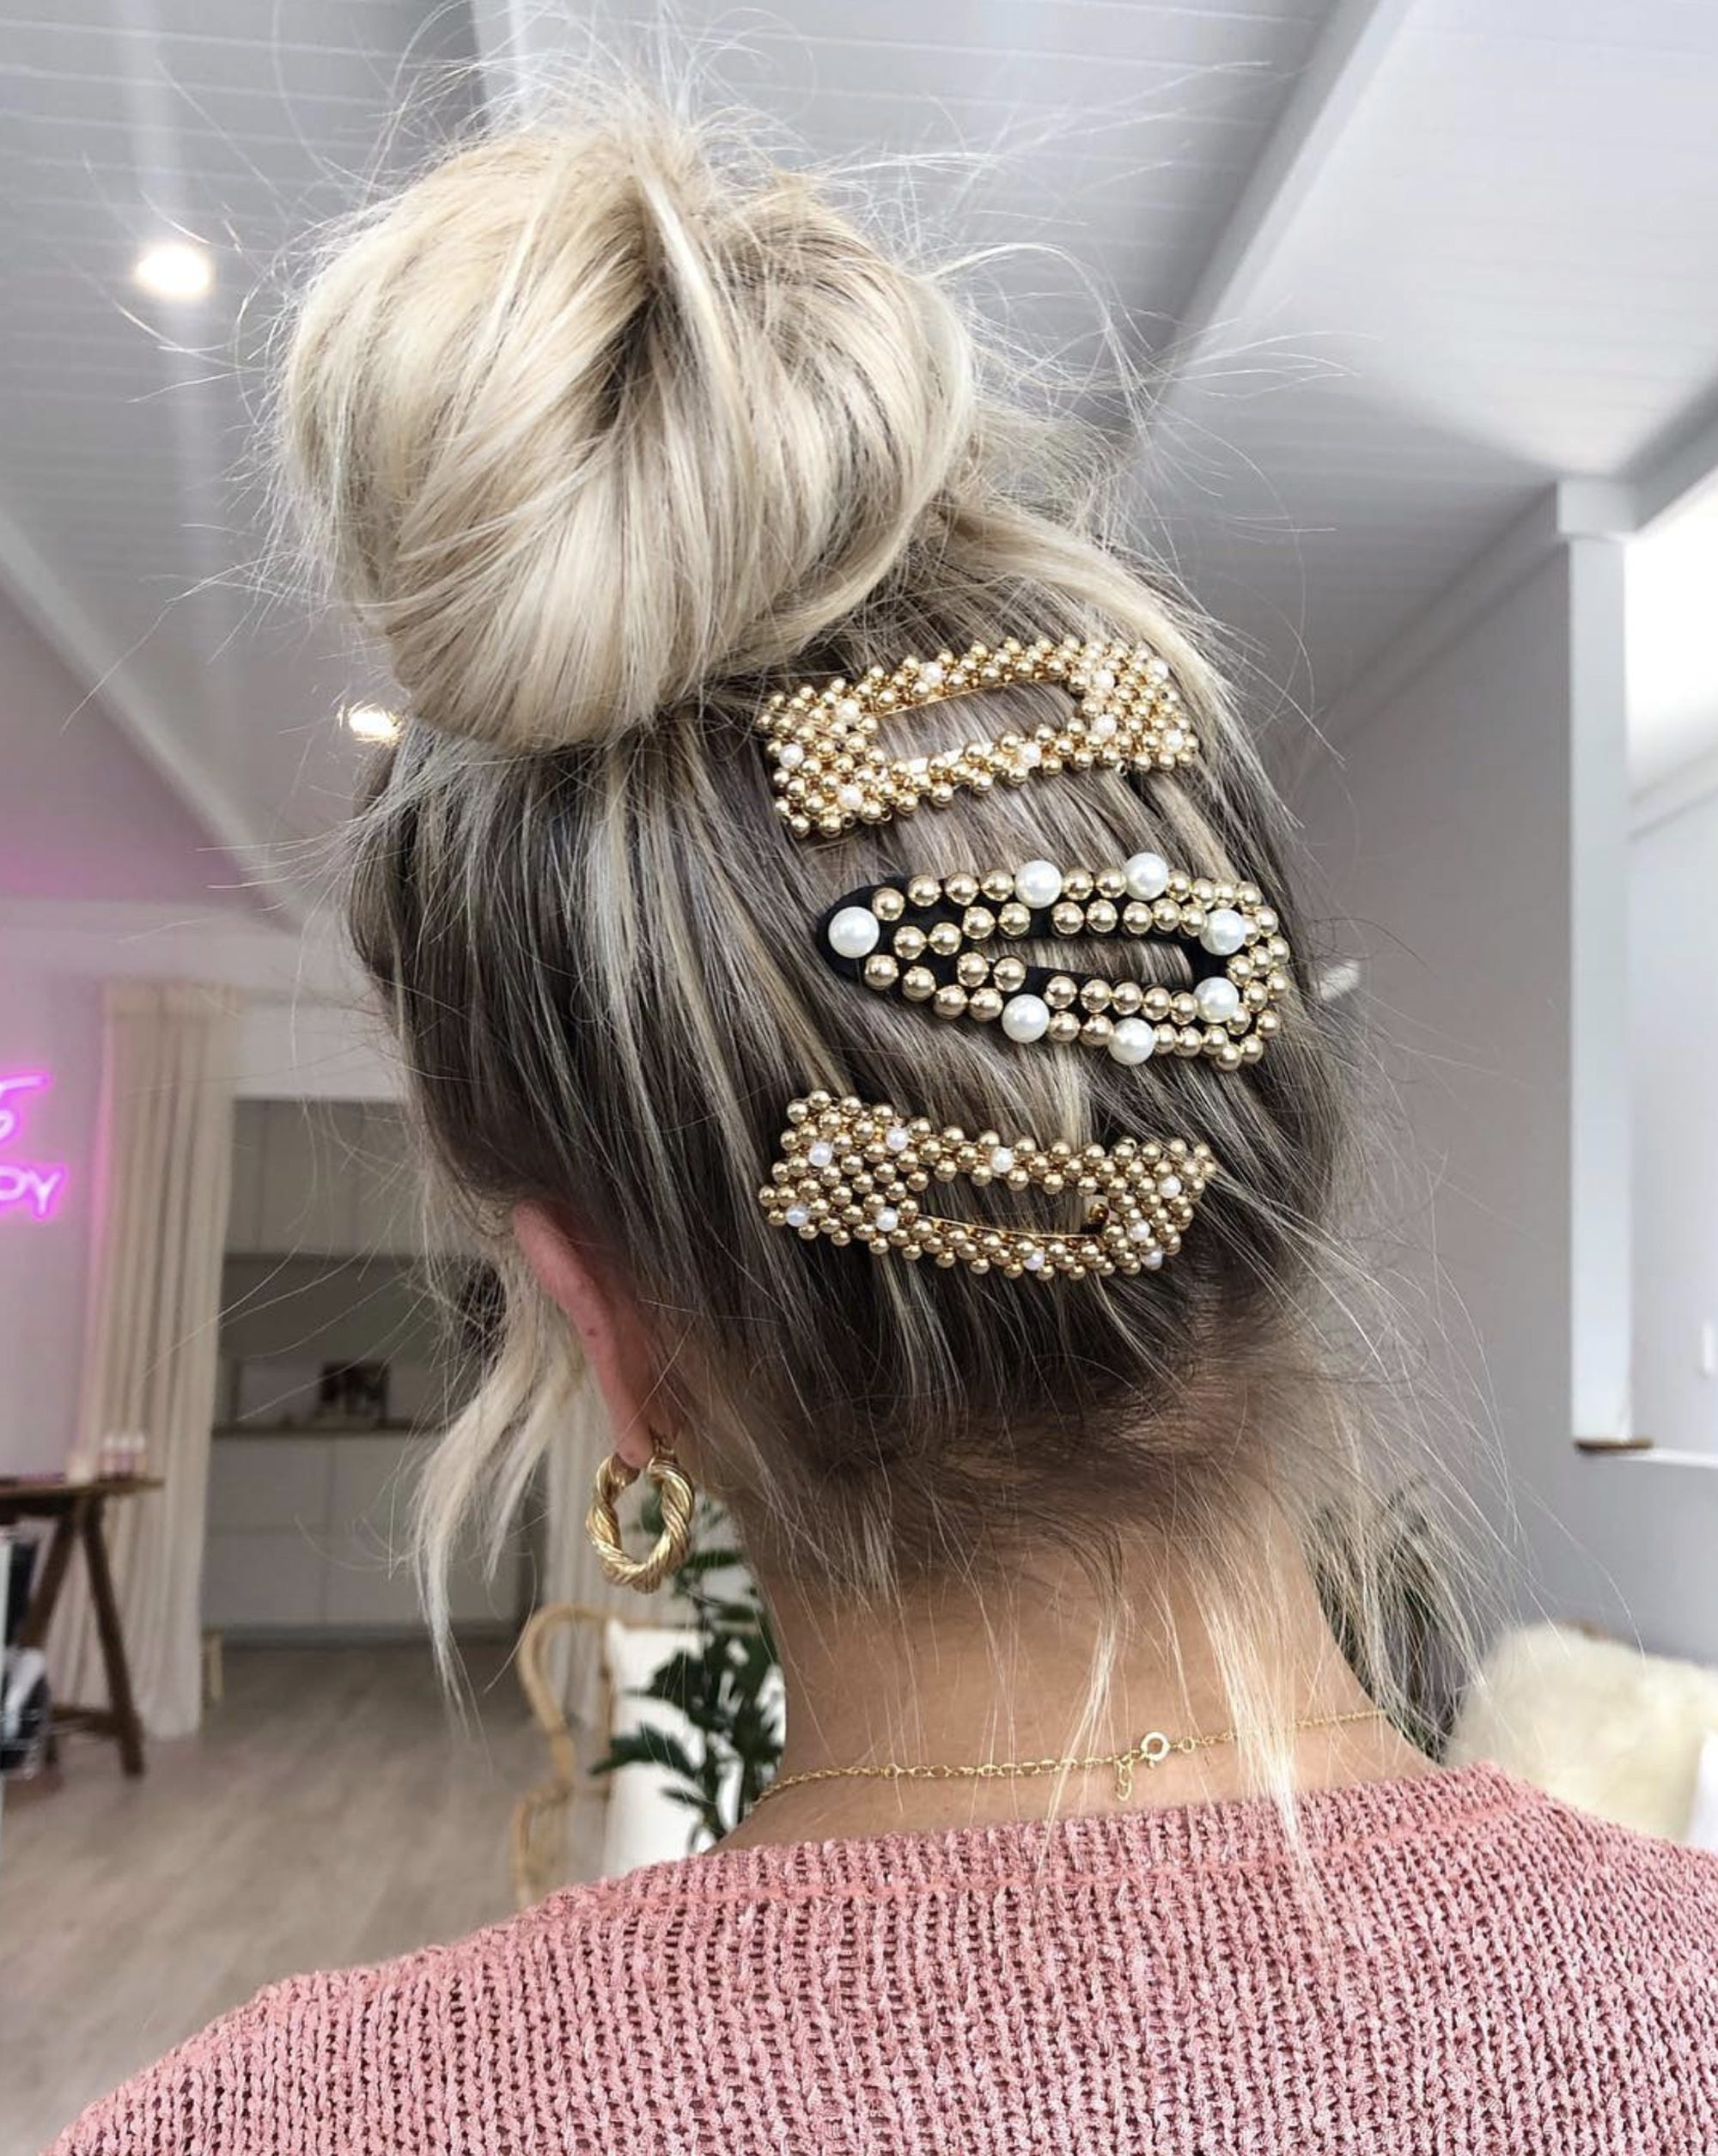 'Ballet Lights' – The Chic Way To Update Your Signature Topknot